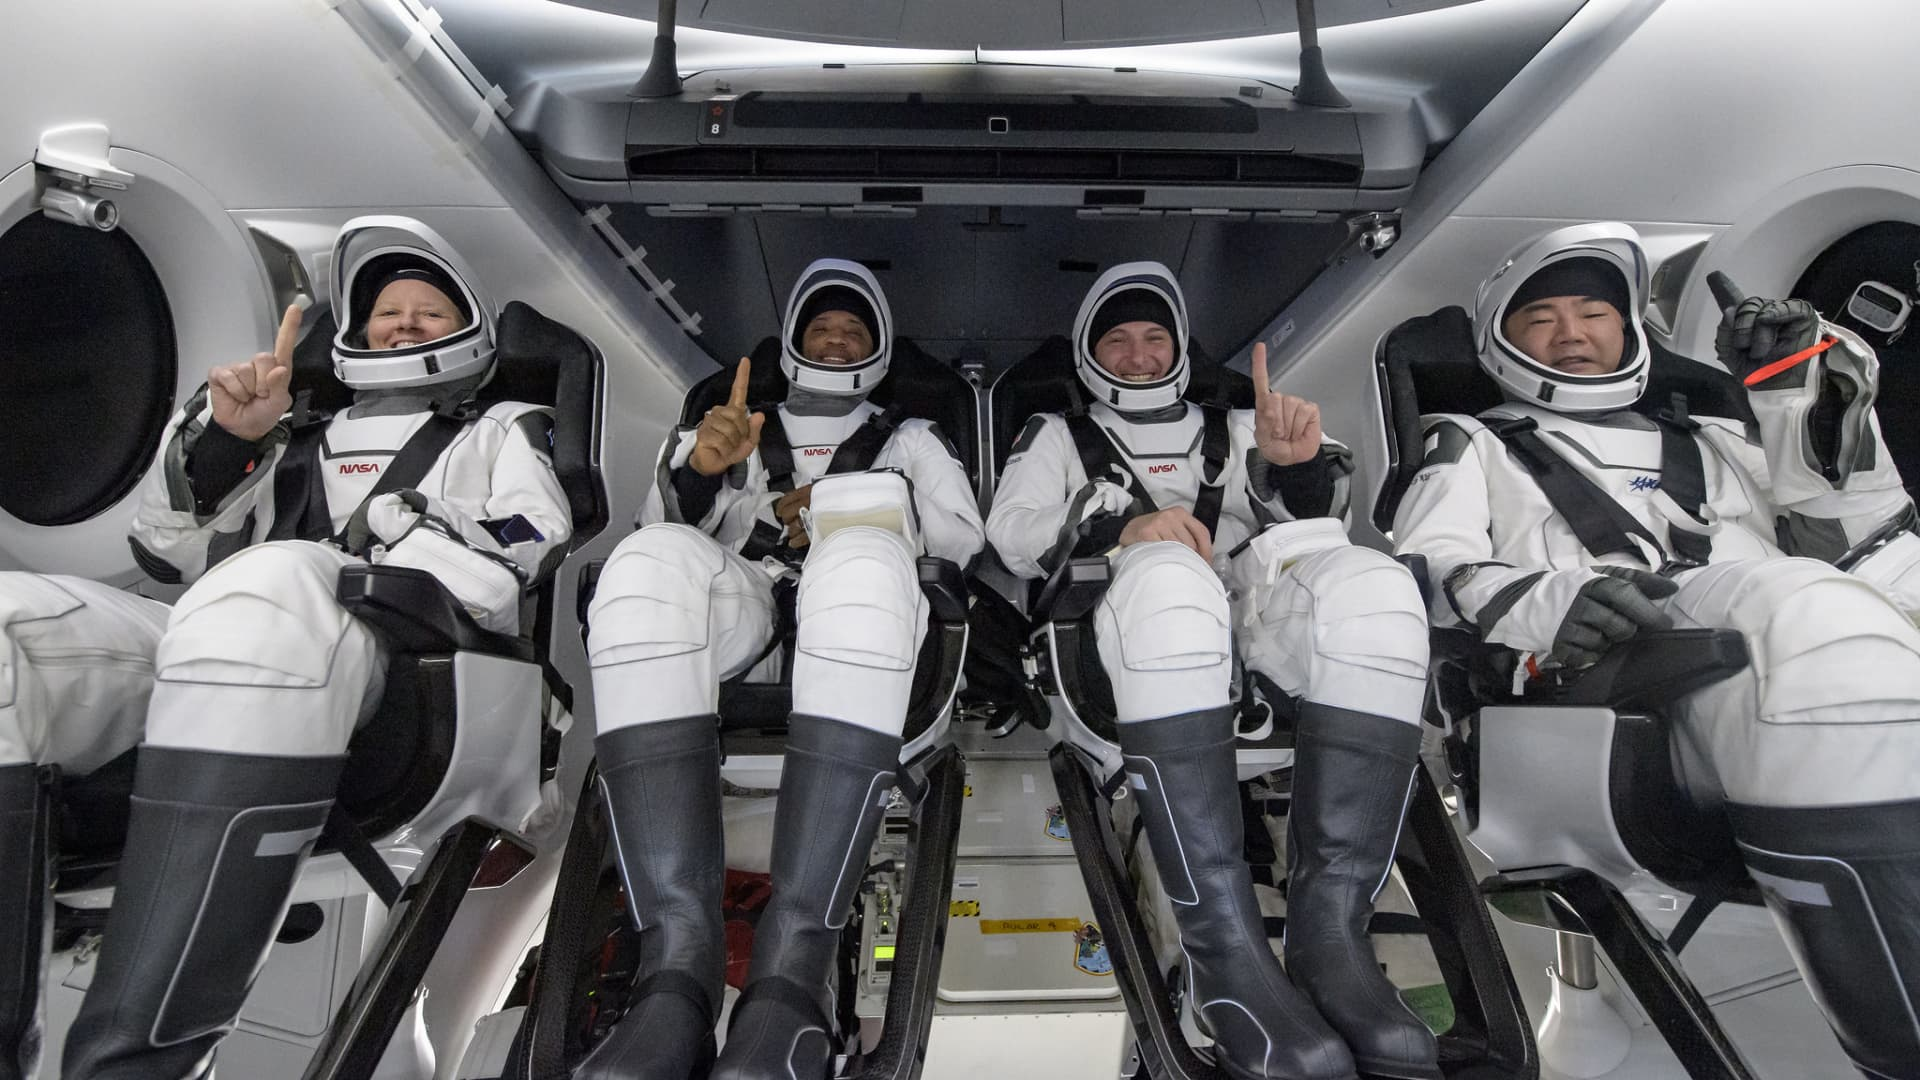 From left: NASA astronauts Shannon Walker, Victor Glover, and Mike Hopkins, and JAXA astronauts Soichi Noguchi inside SpaceX's Crew Dragon capsule 'Resilience' after splashdown on May 2, 2021.